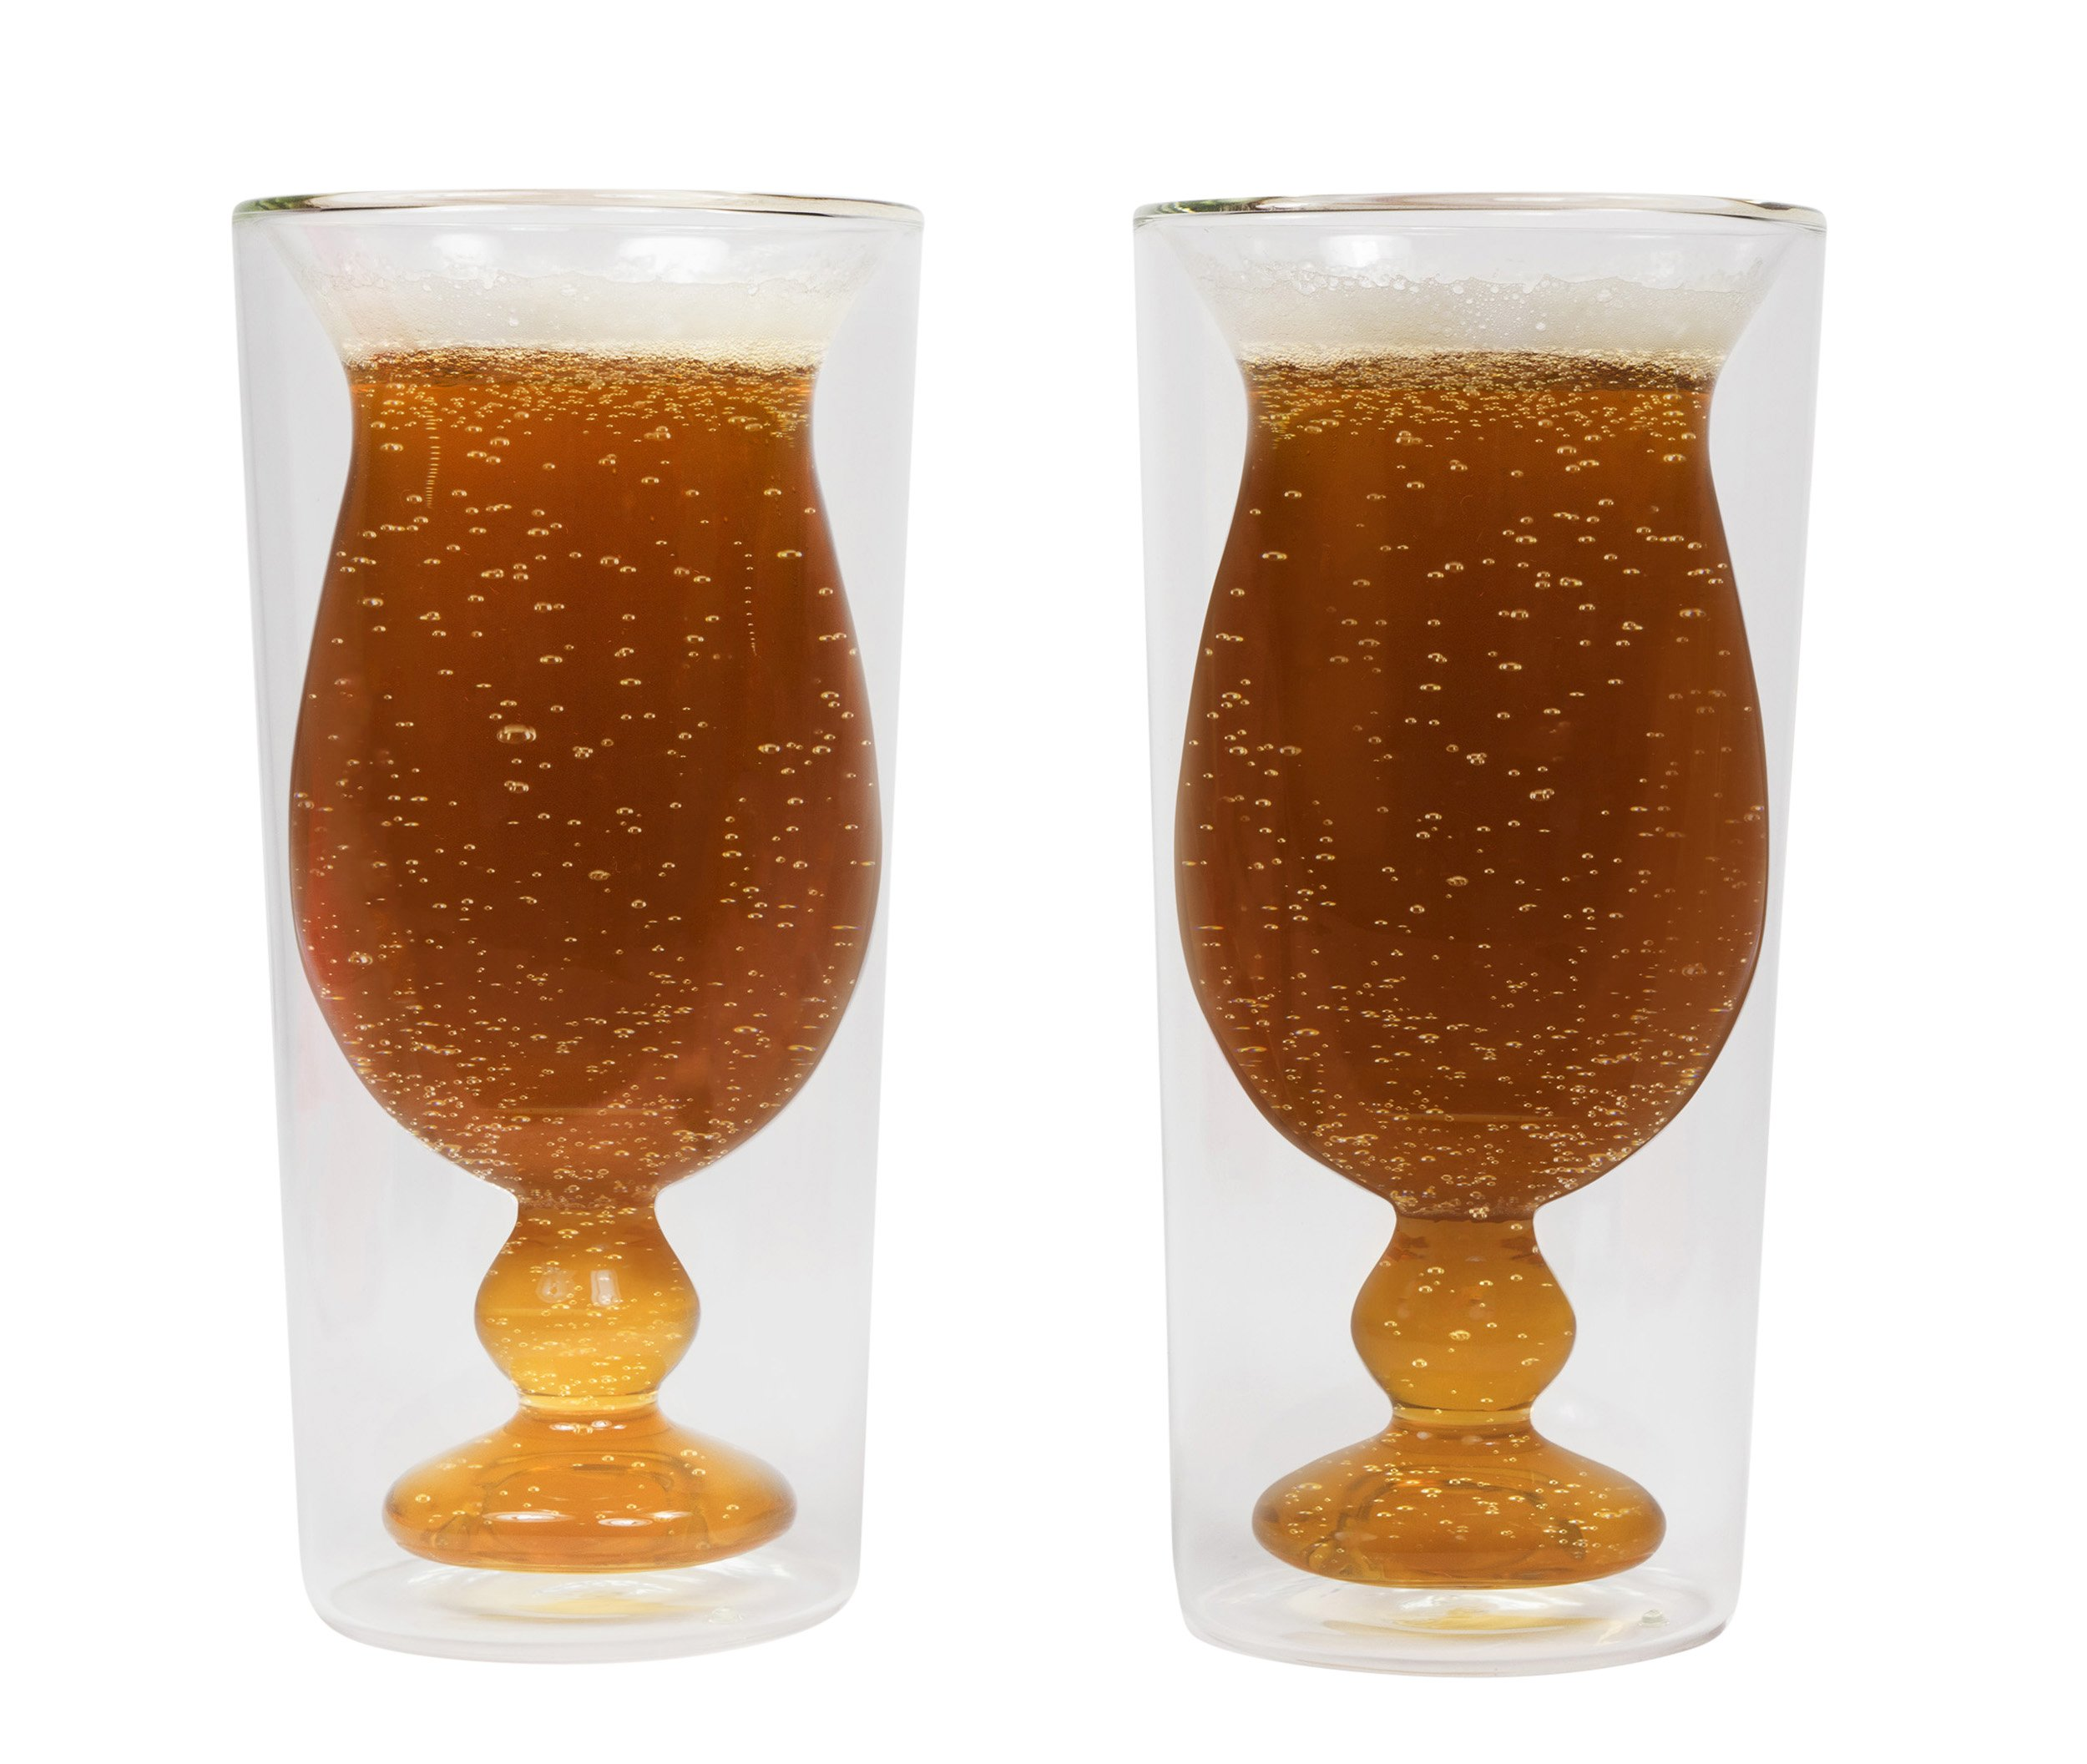 Sage Double Wall Tumbler Glass - Set Of 2 - Unique Stemware Design For Beer, Wine, Mixed Drinks, And More! 14 Oz.